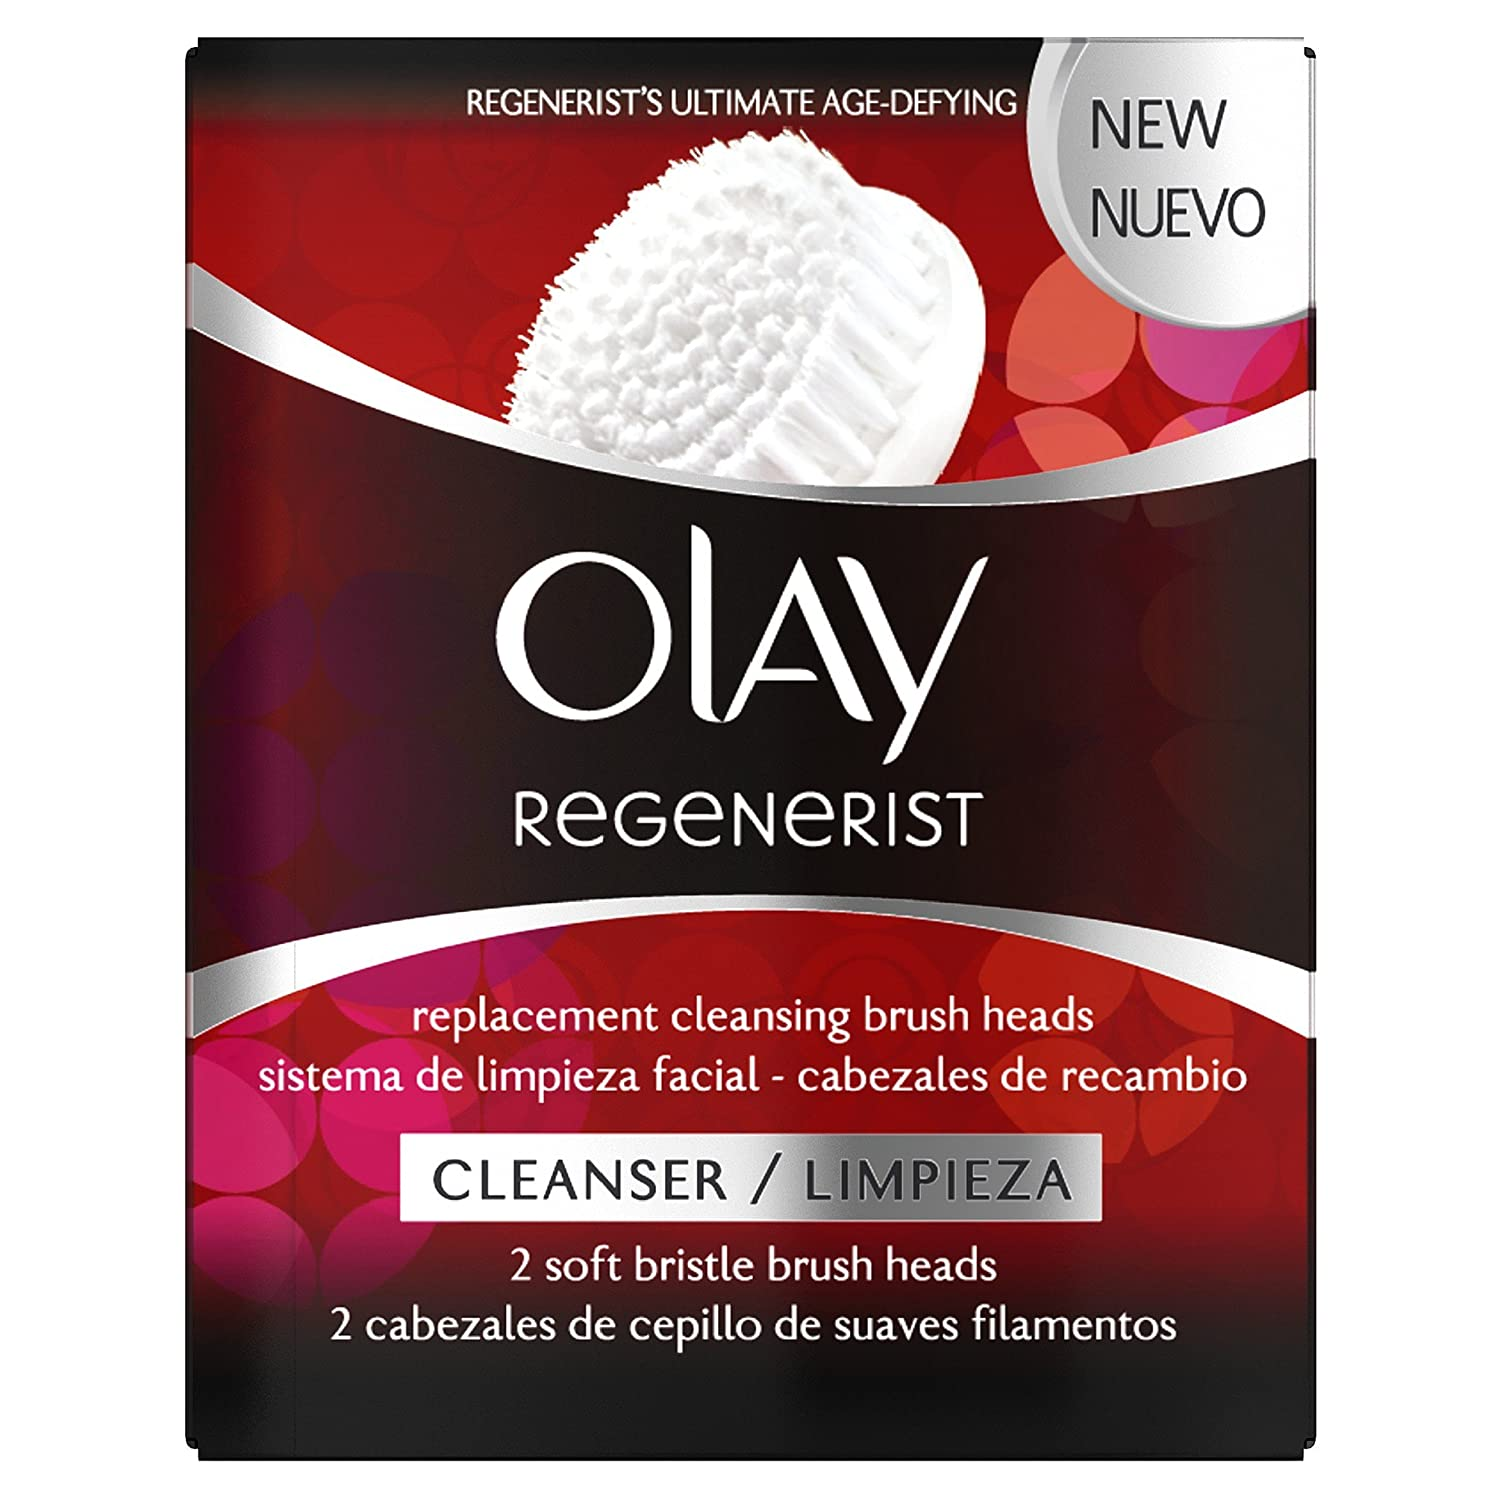 Olay Regenerist Replacement Cleansing Brush Heads, 150 g: Beauty